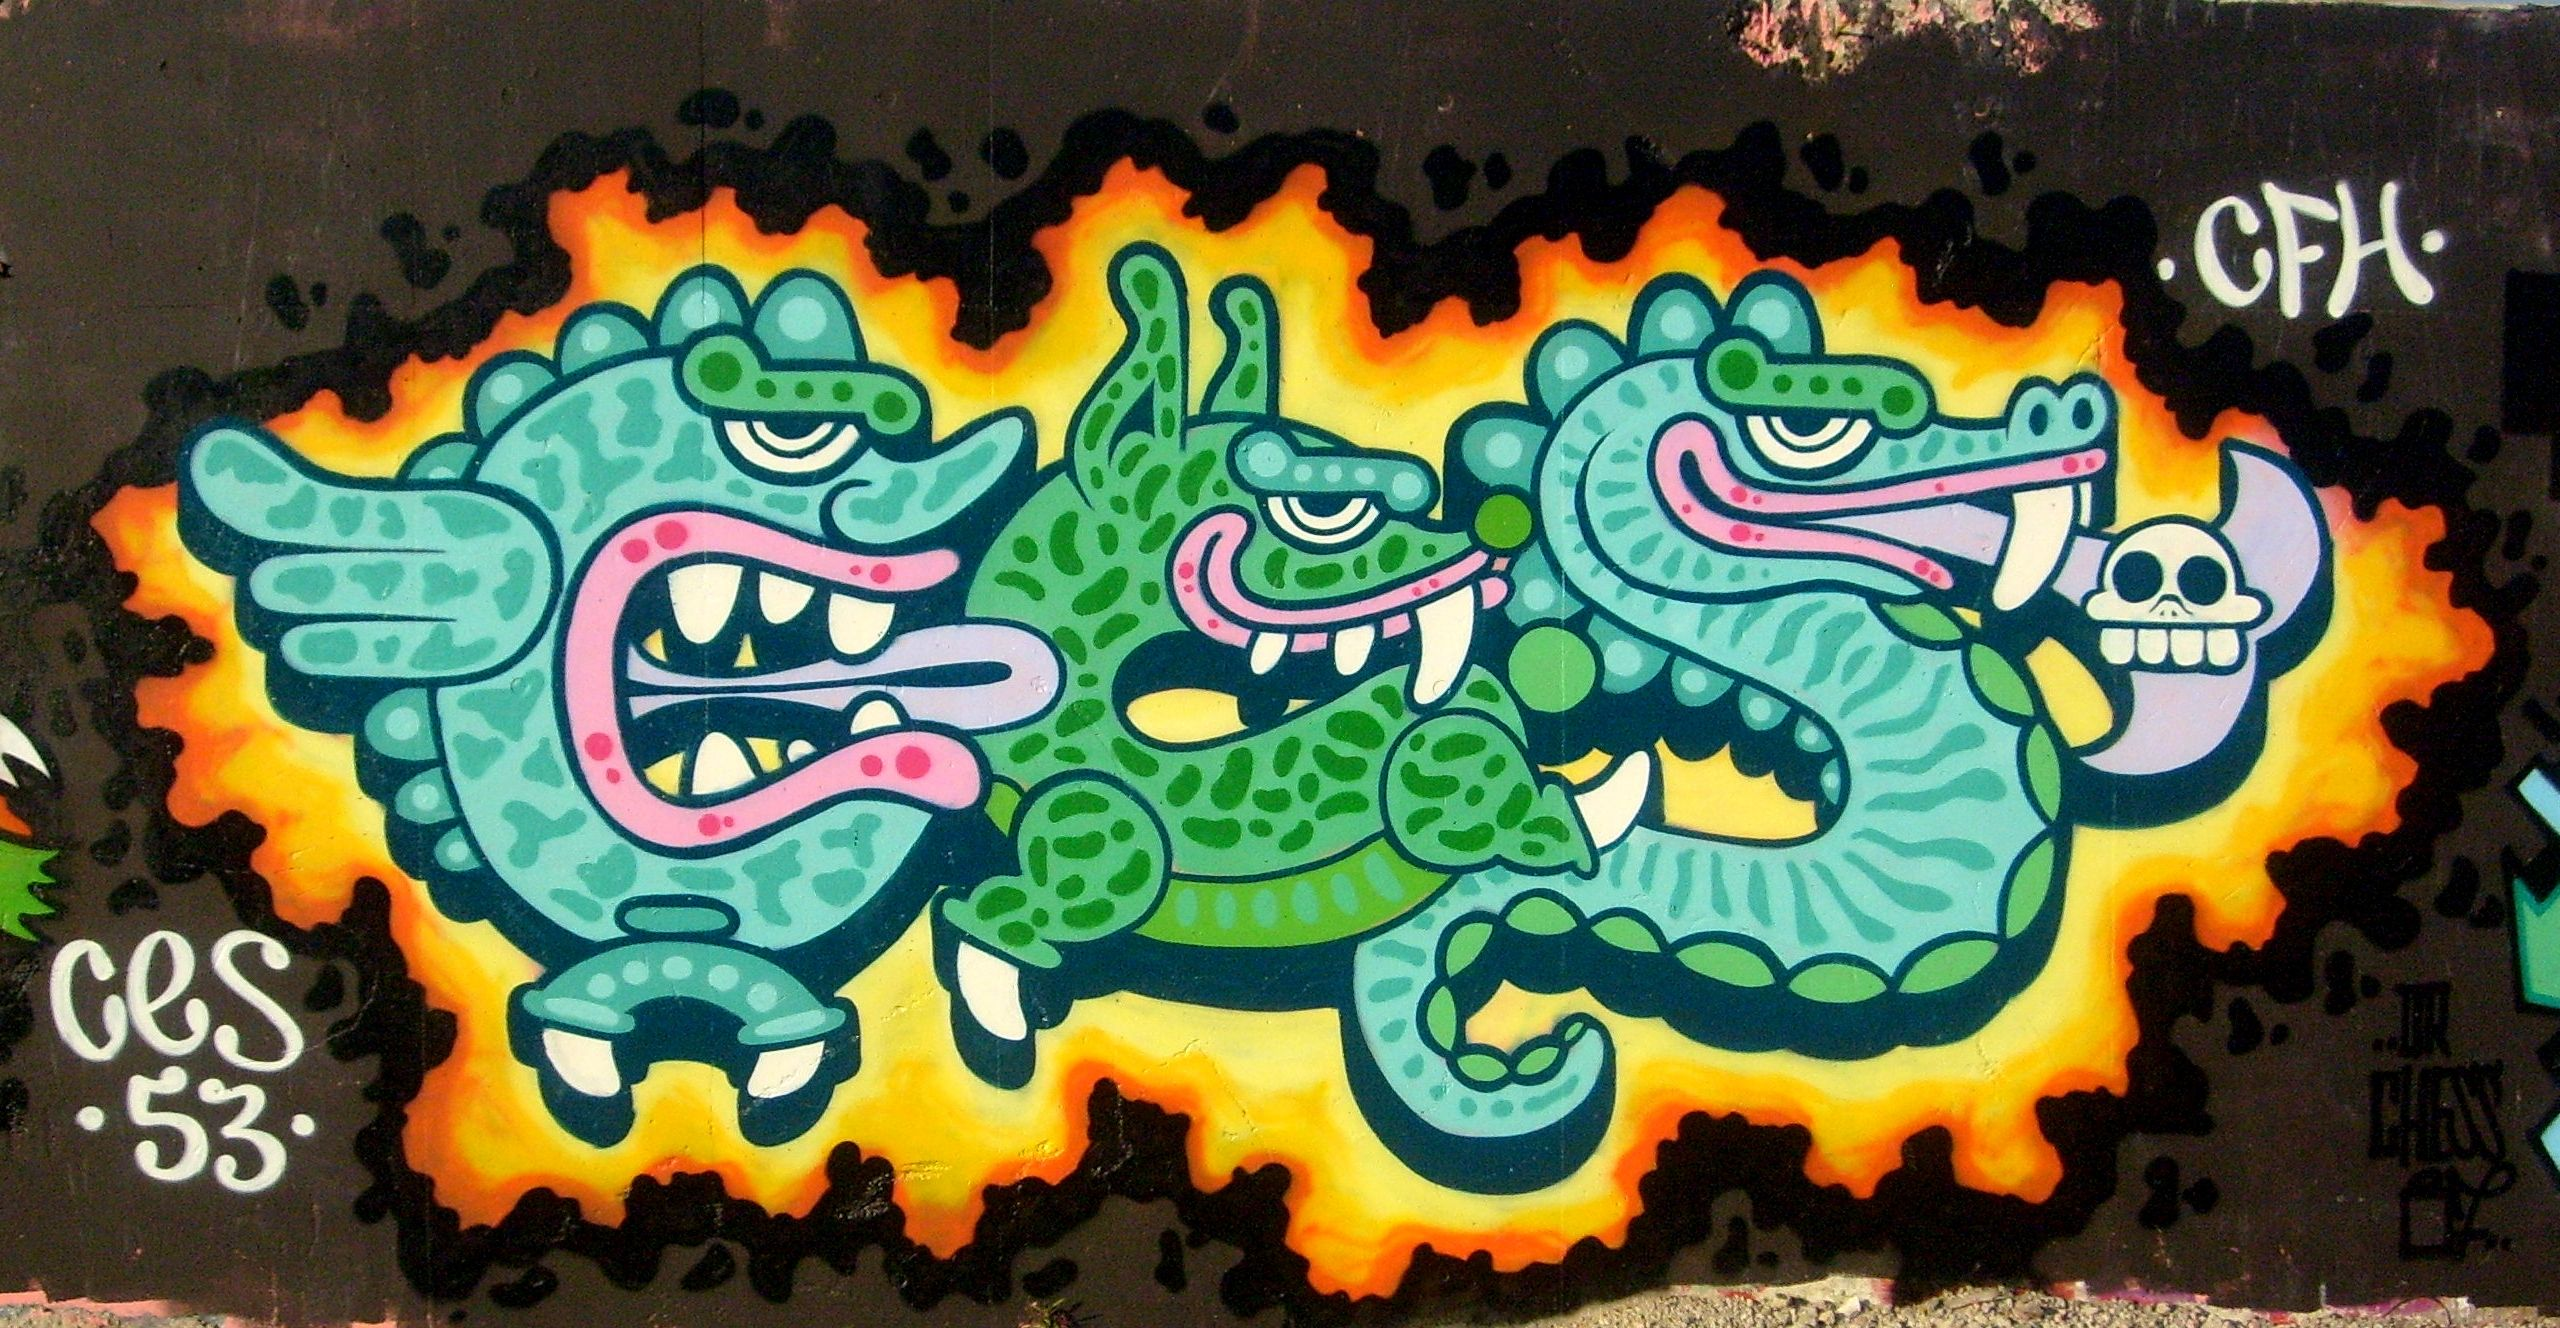 Graffiti art designs - Find This Pin And More On Street Art From Around The World By Brim1tats